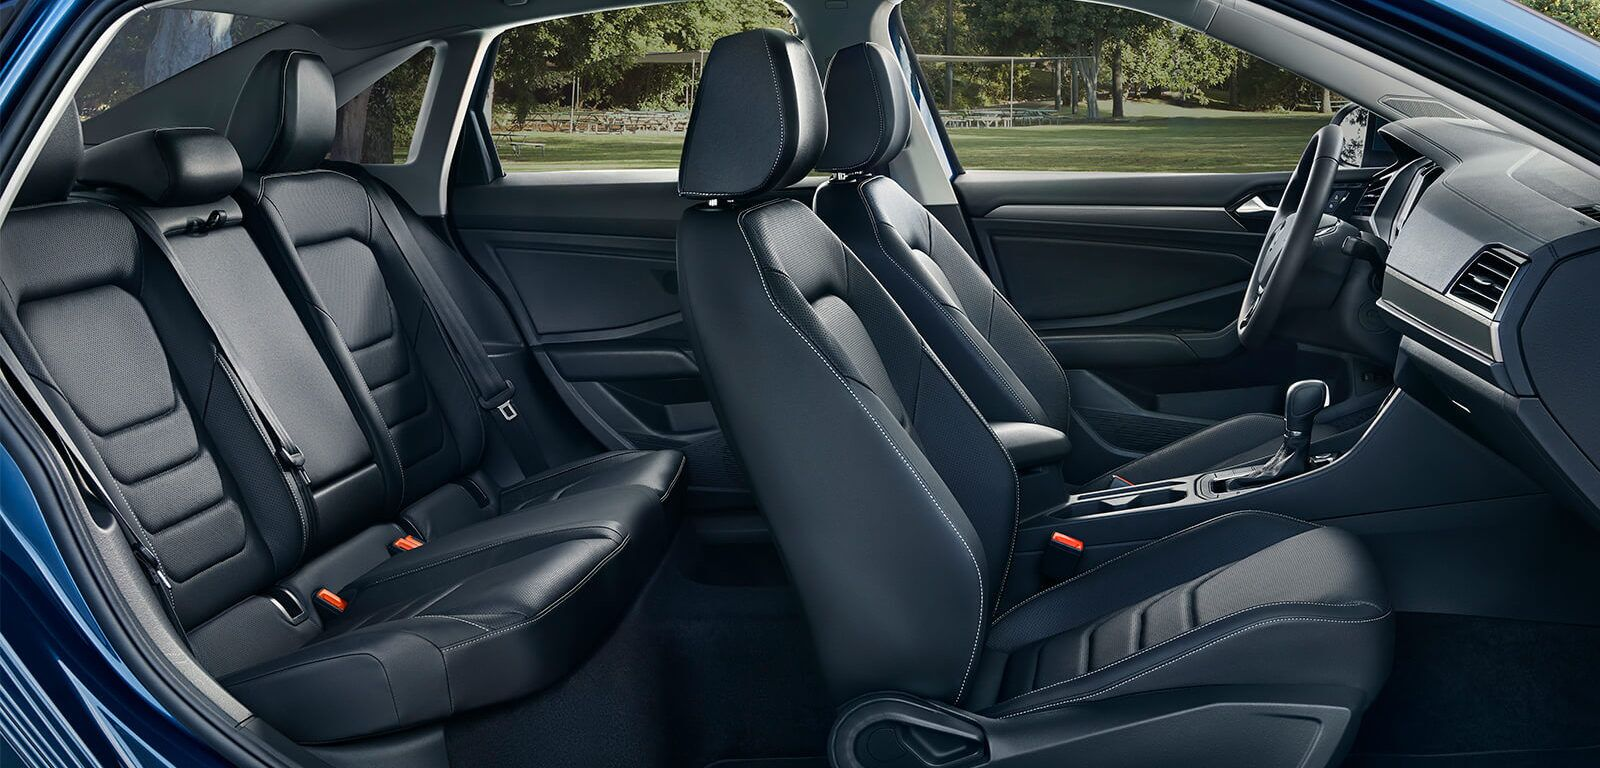 New 2019 Volkswagen Jetta available front row leather heated seats